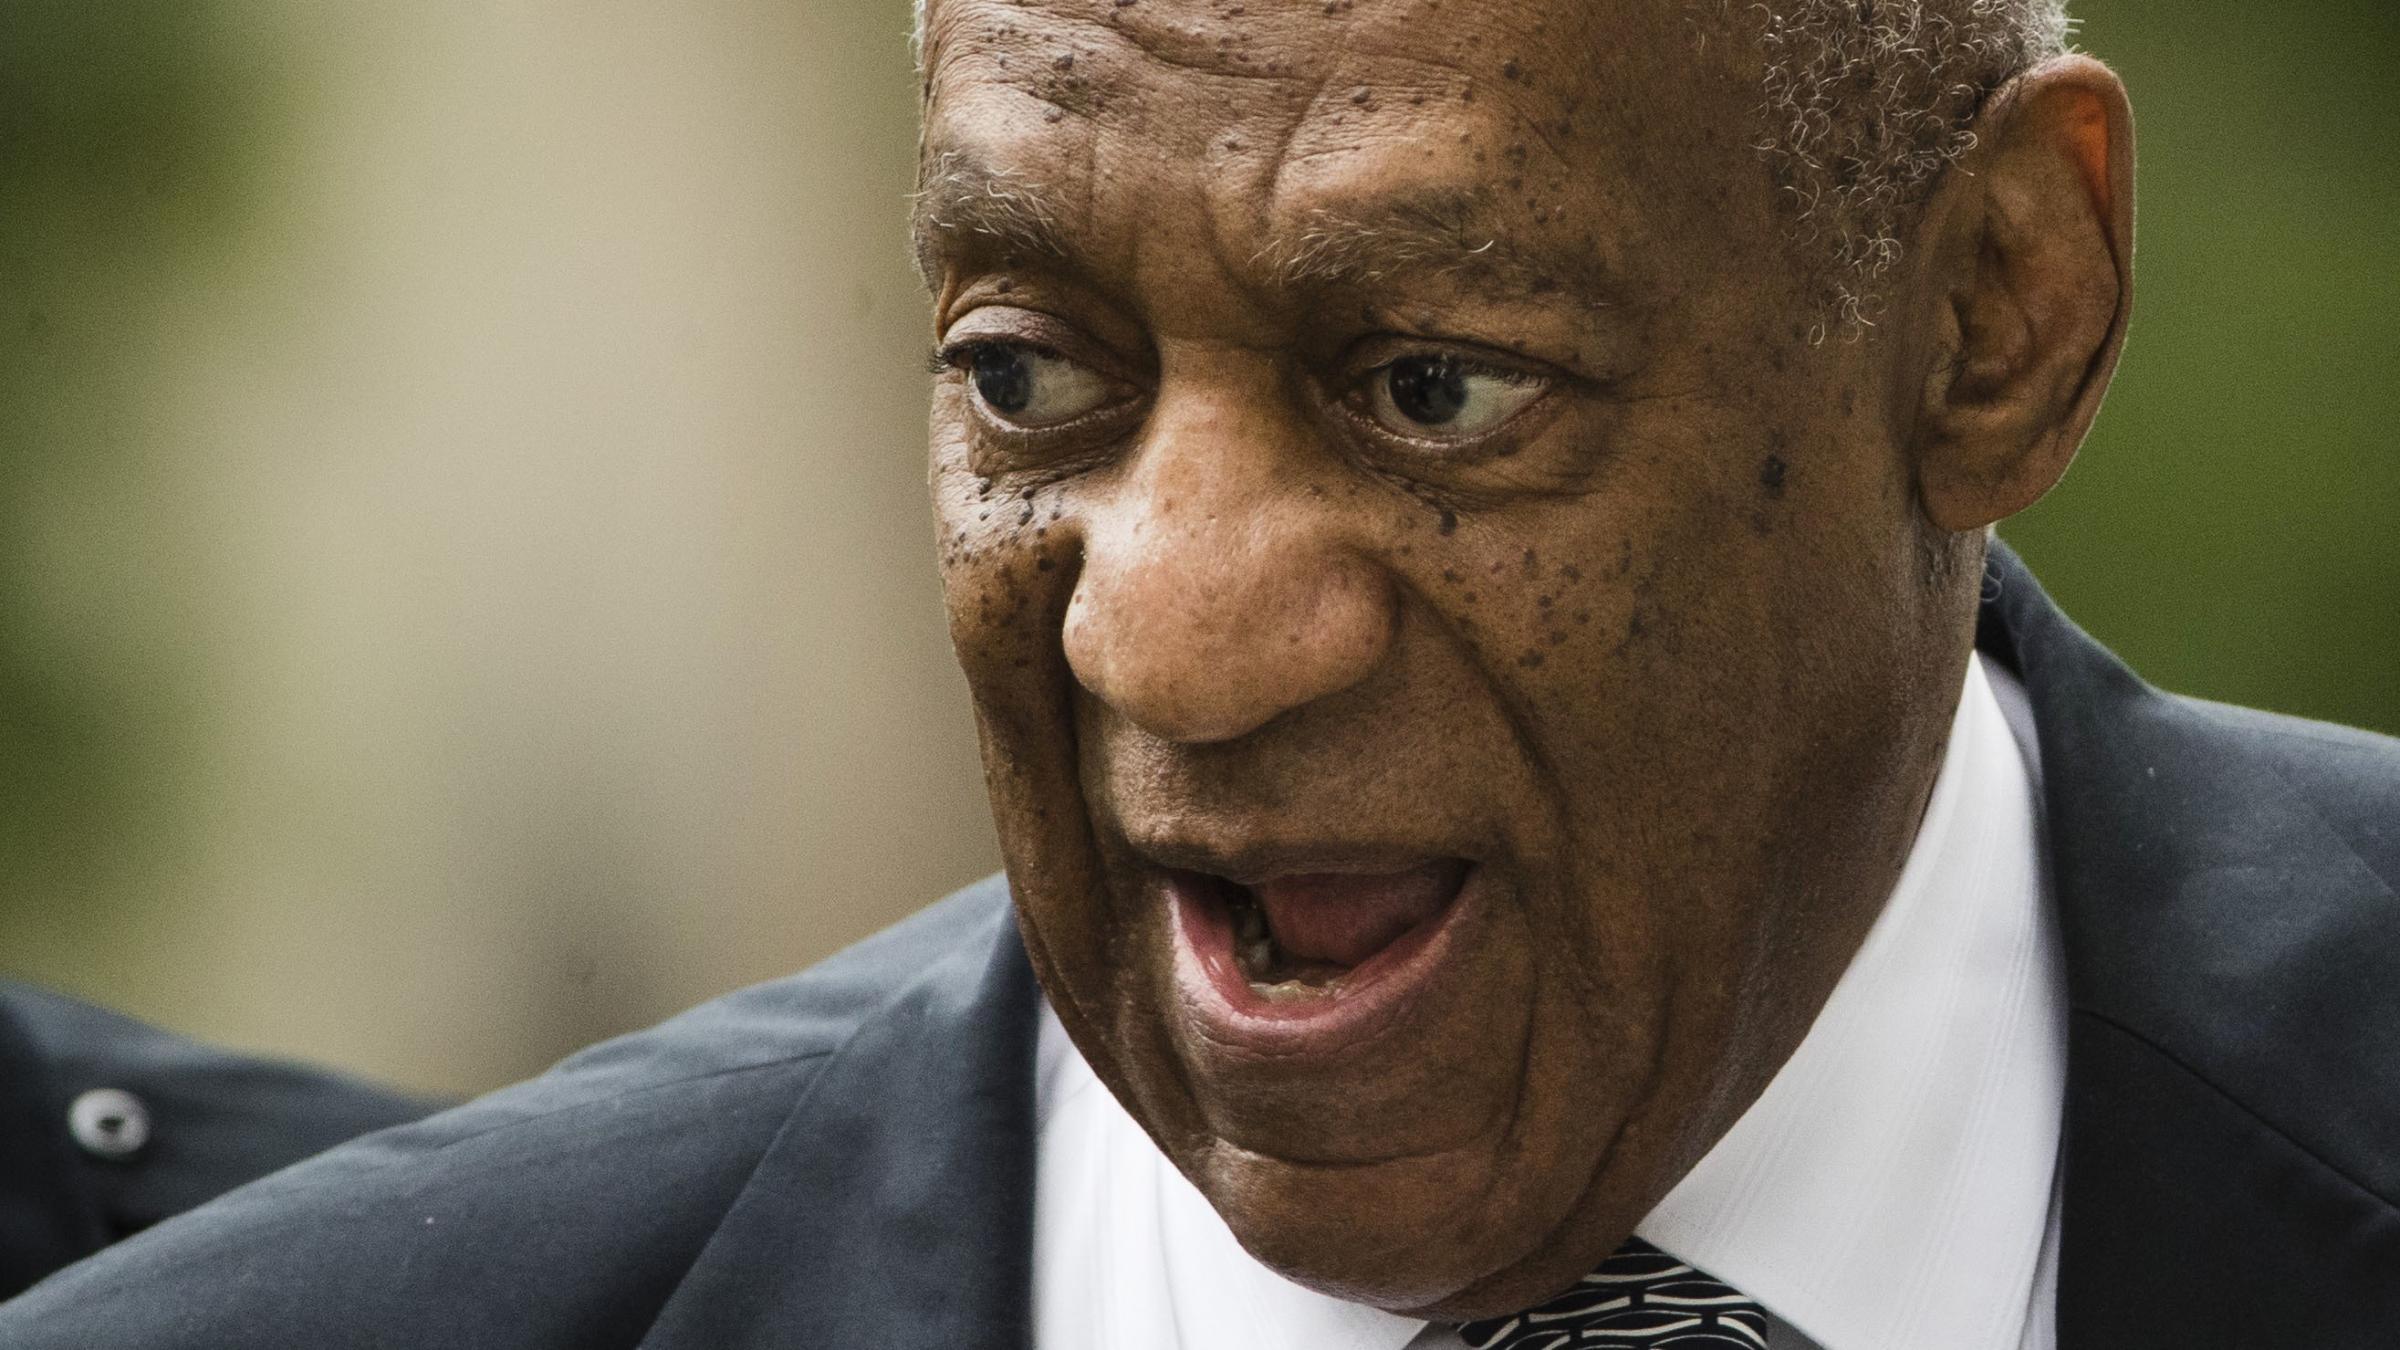 At standstill, Cosby jury goes back to deliberate verdict